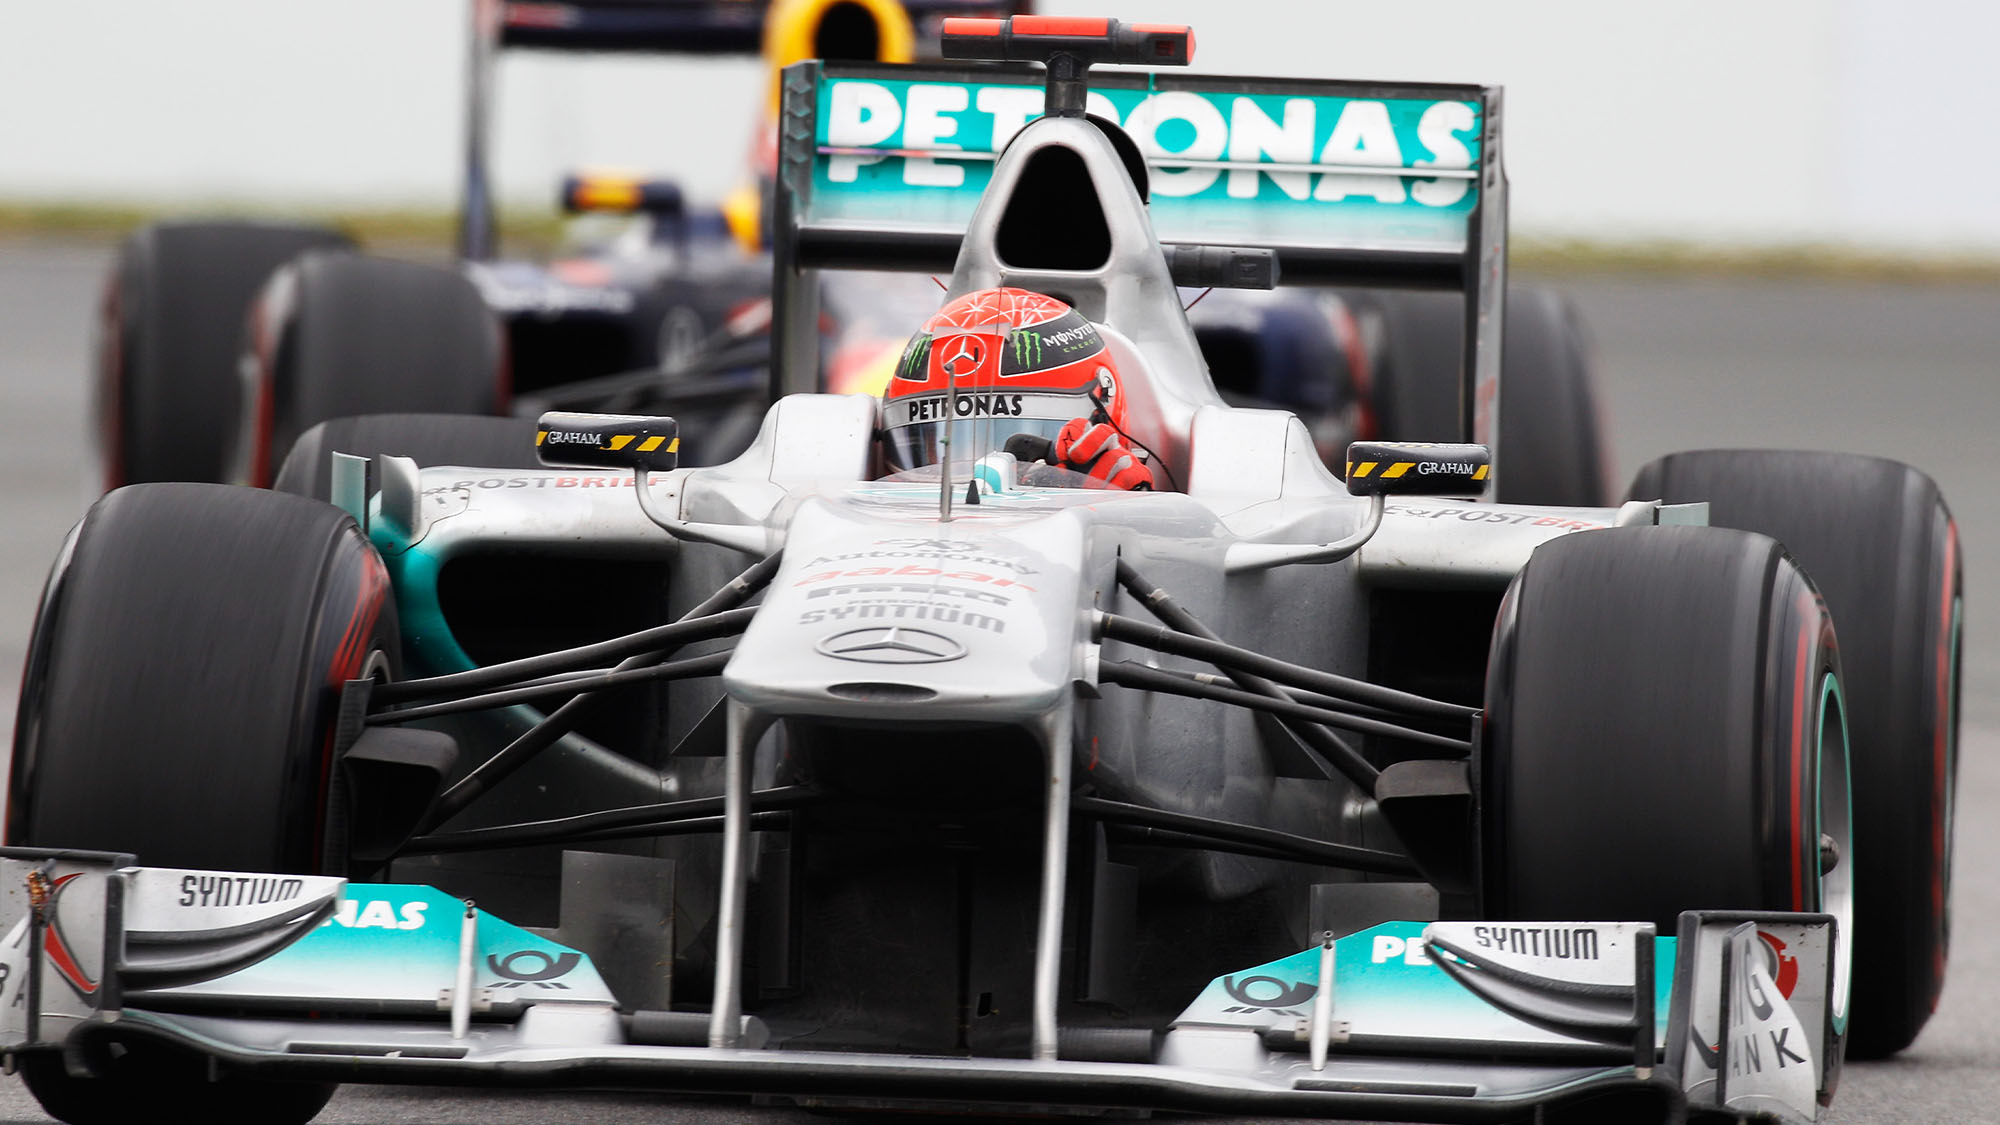 MONTREAL, CANADA - JUNE 12: Michael Schumacher of Germany and Mercedes GP drives during the Canadian Formula One Grand Prix at the Circuit Gilles Villeneuve on June 12, 2011 in Montreal, Canada. (Photo by Mark Thompson/Getty Images)